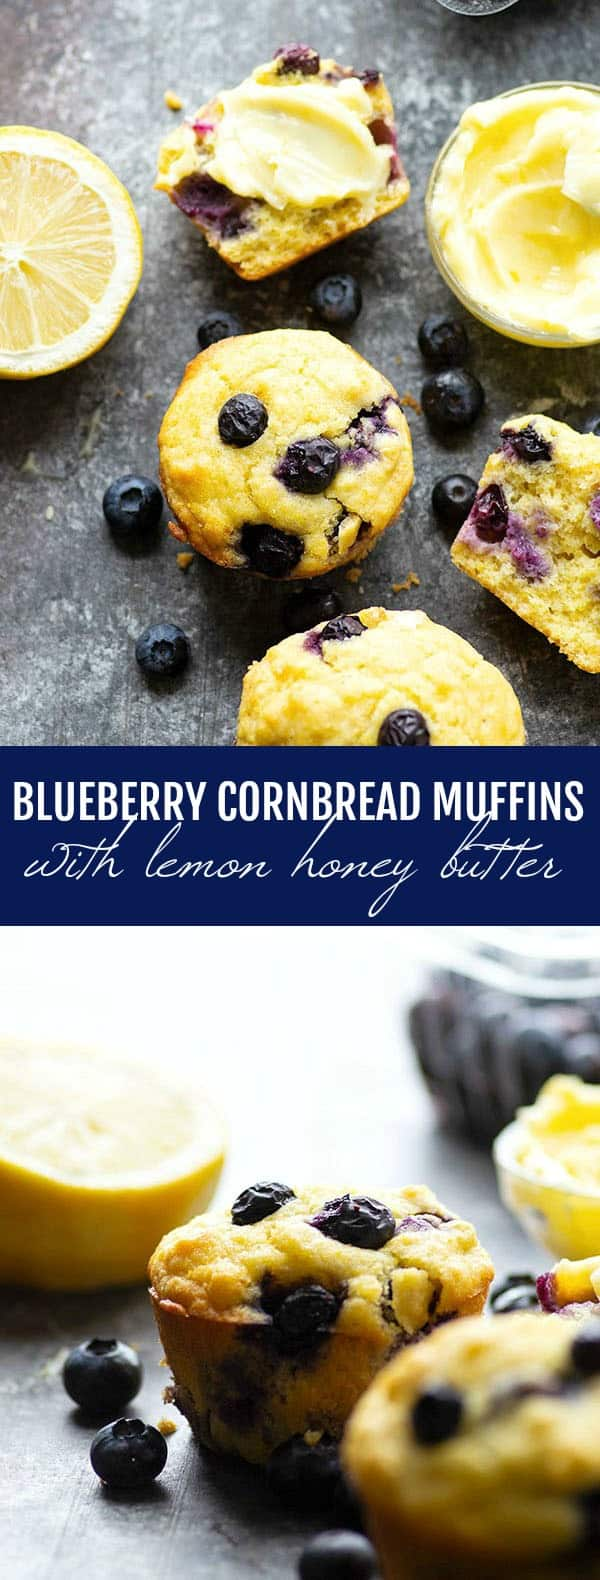 Blueberry cornbread muffins are incredibly soft inside, loaded with juicy blueberries, and heavenly slathered with a sweet lemon honey butter!